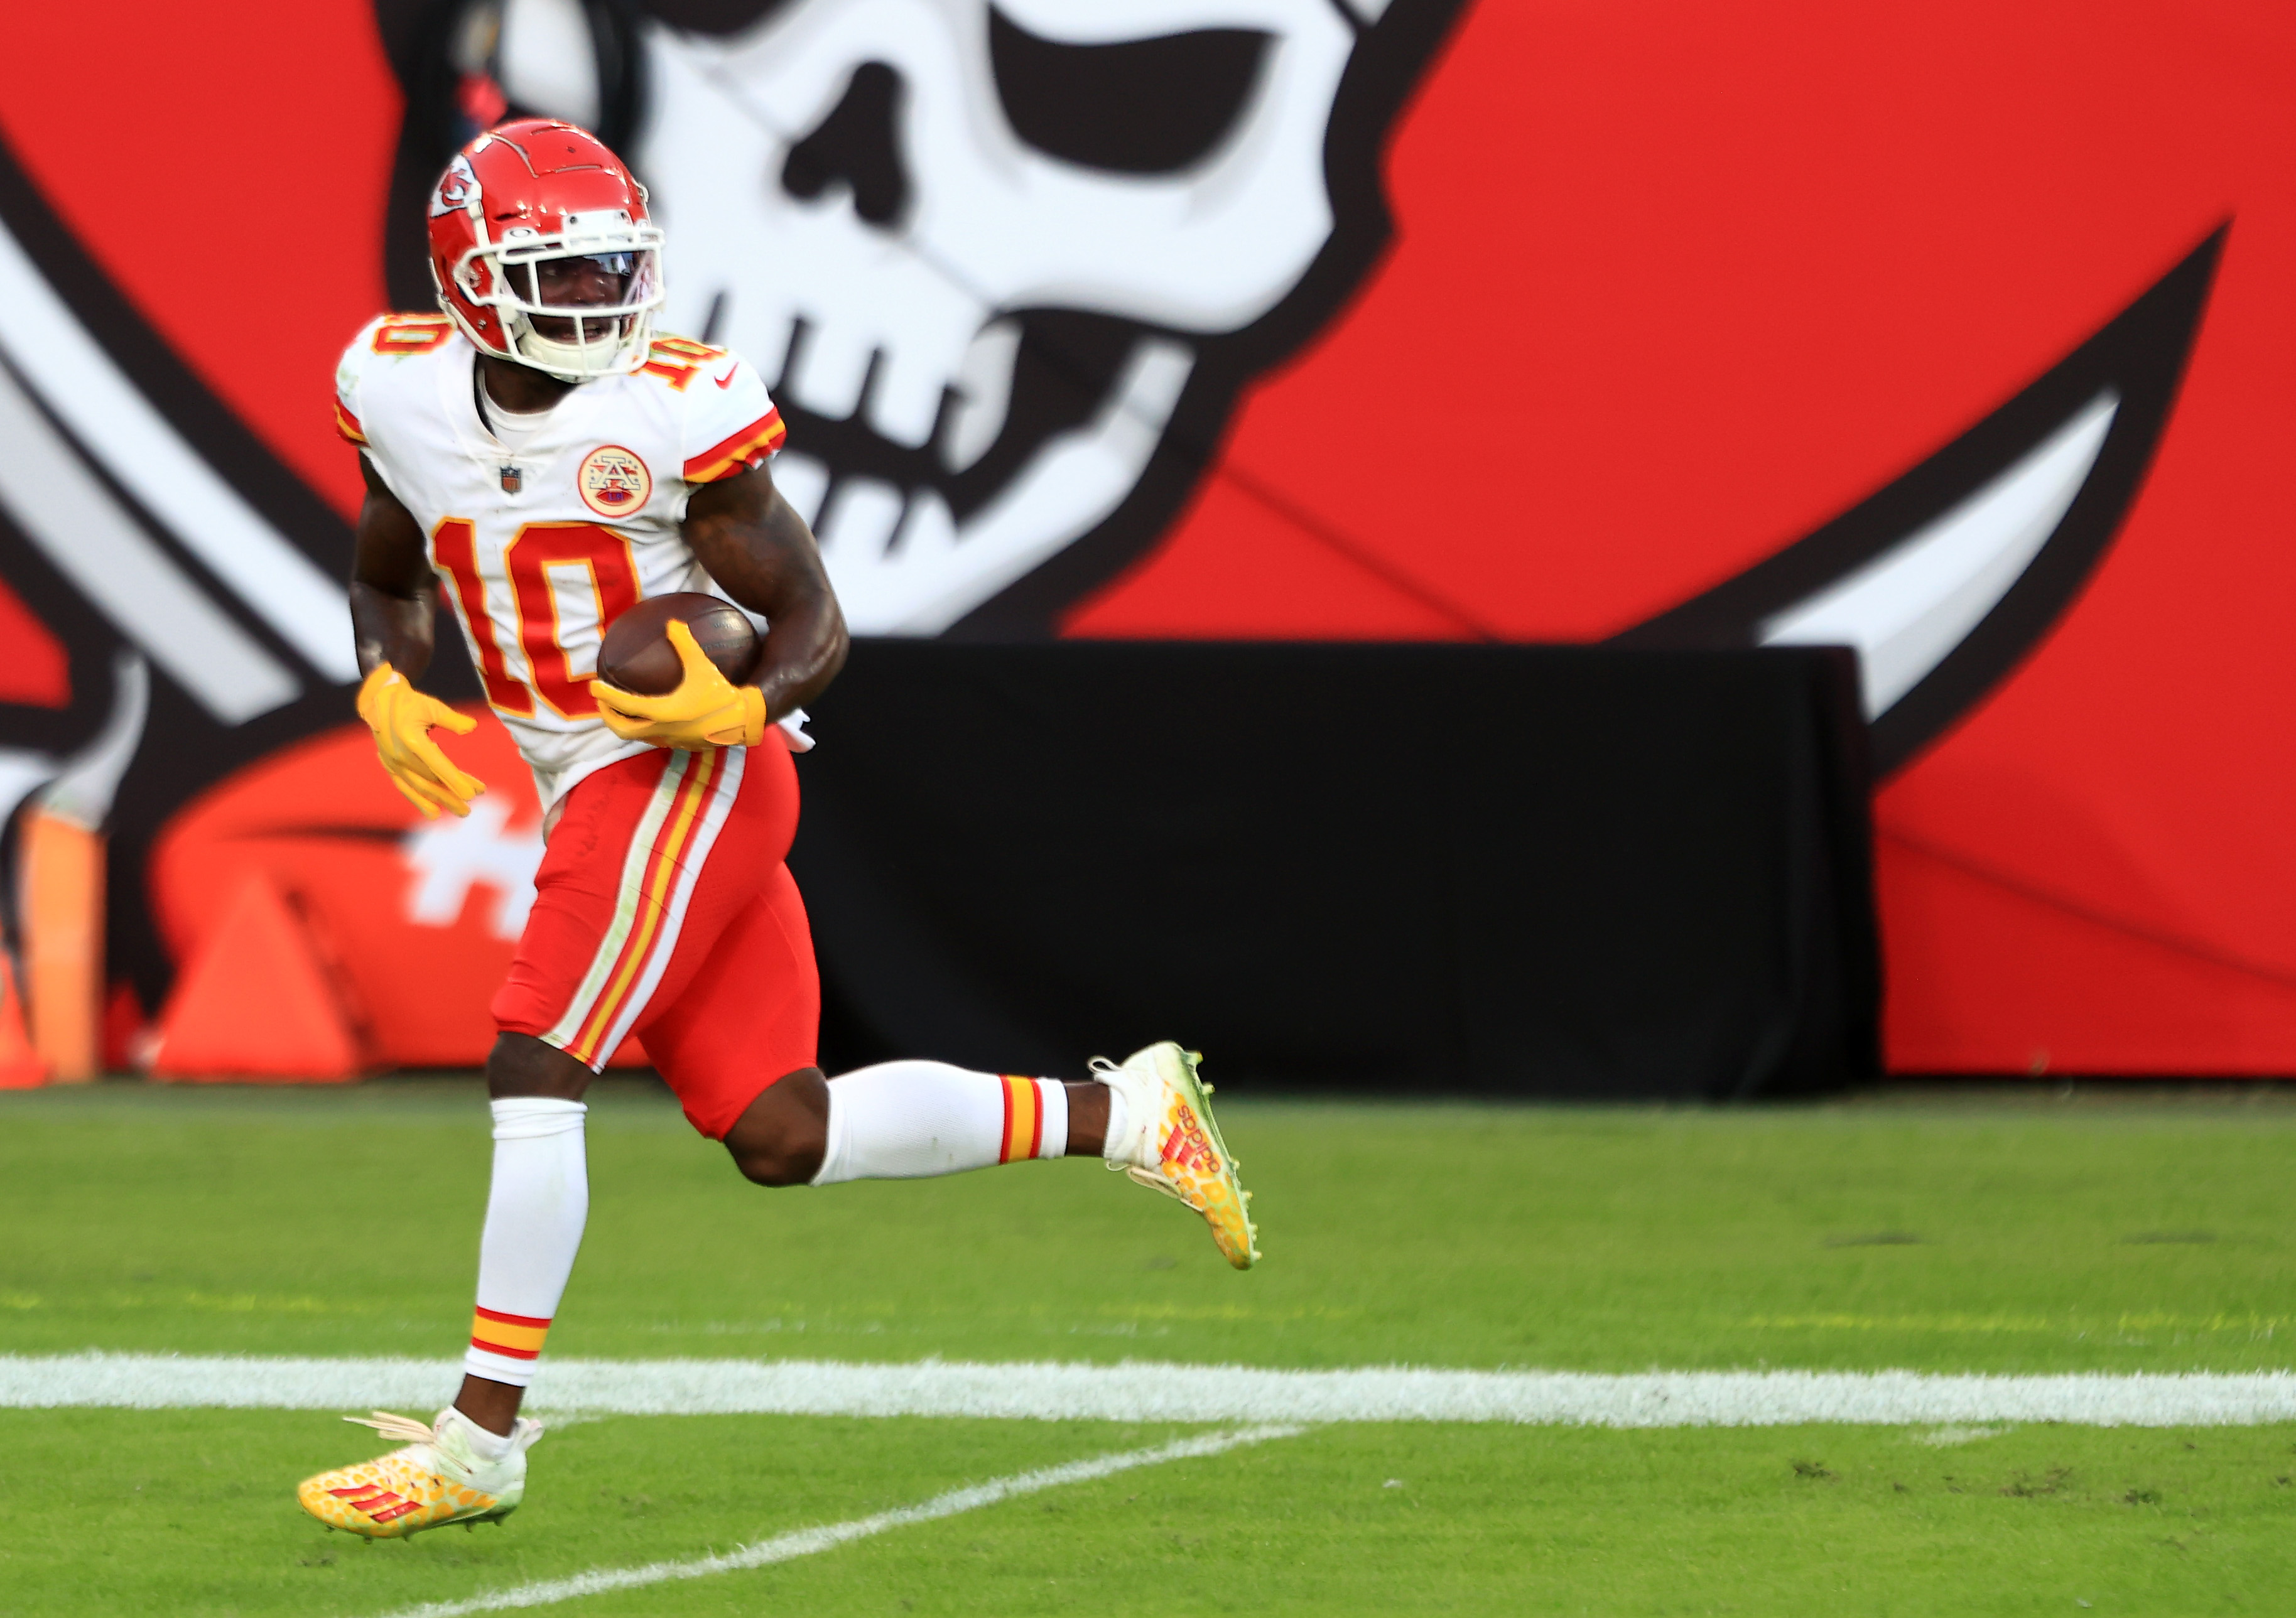 Tyreek Hill #10 of the Kansas City Chiefs carries the ball in for a touchdown following a catch during their game against the Tampa Bay Buccaneers at Raymond James Stadium on November 29, 2020 in Tampa, Florida.